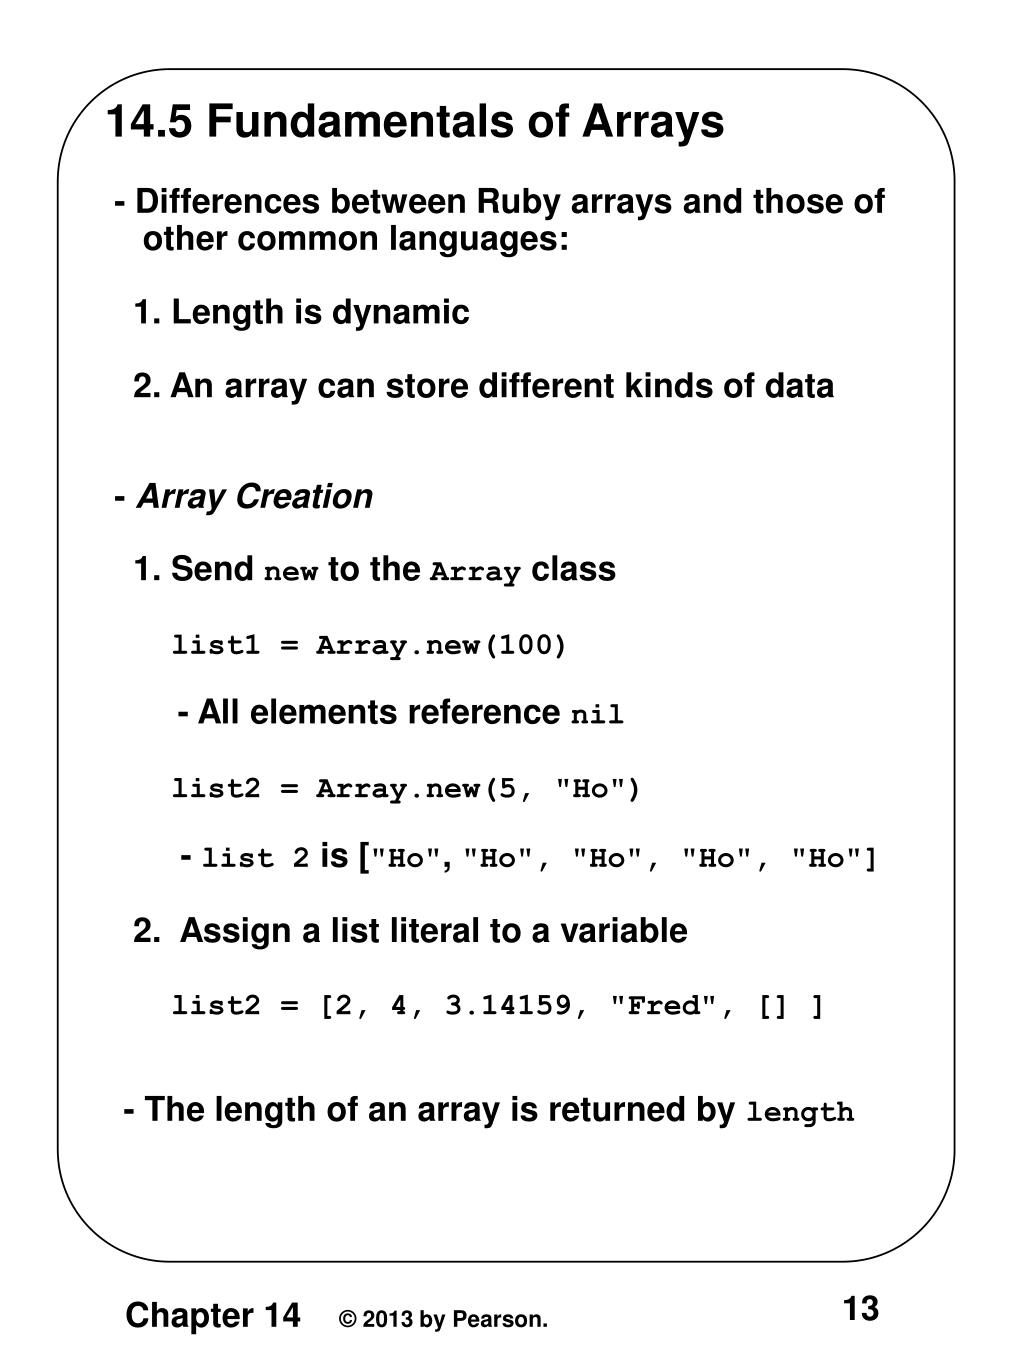 PPT - 14 1 Origins and Uses of Ruby - Designed by Yukihiro